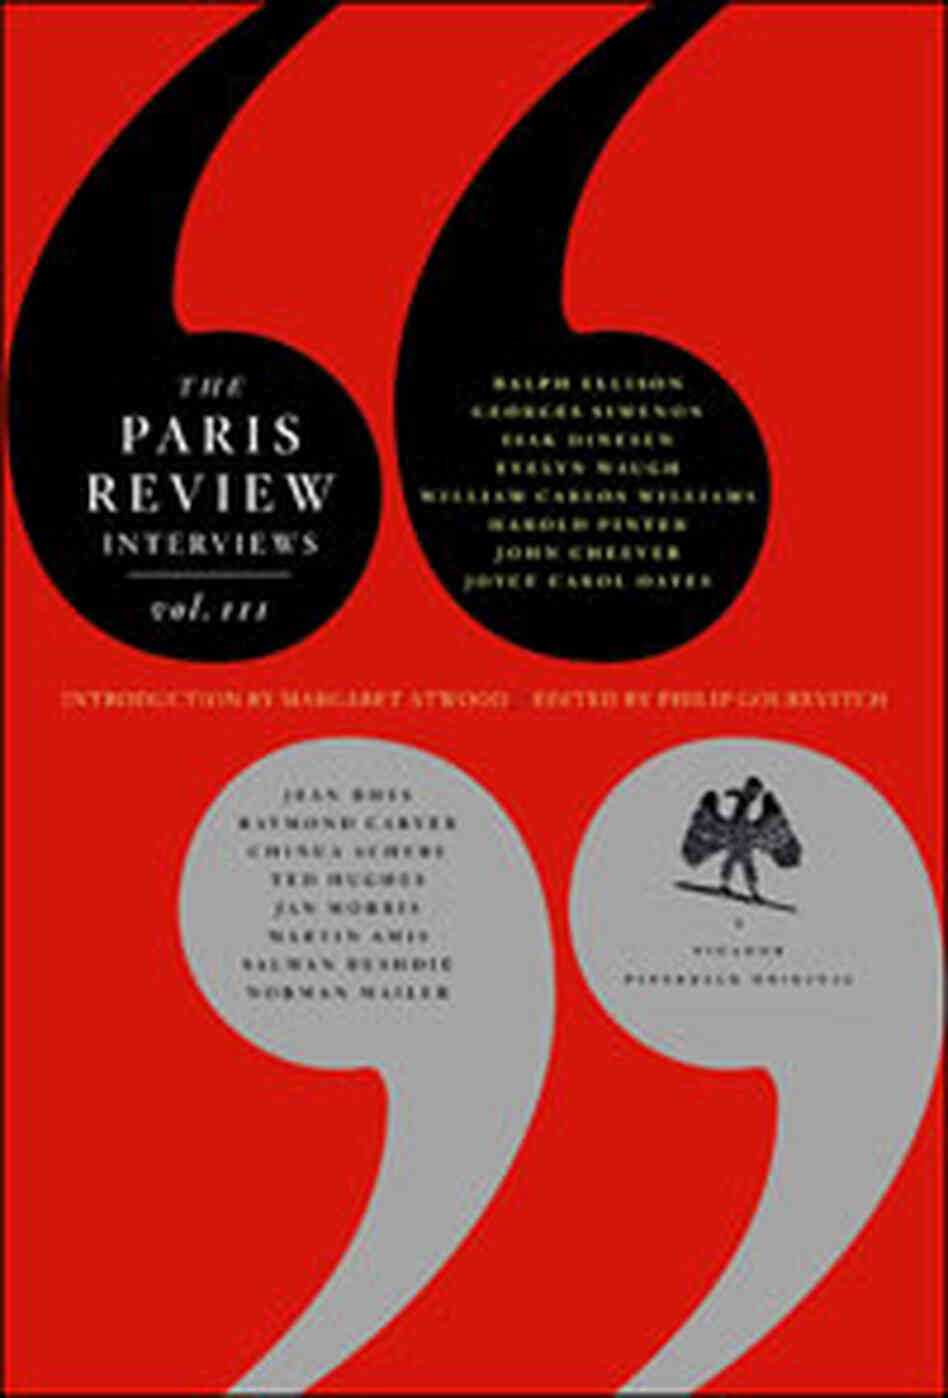 The Paris Review Interviews